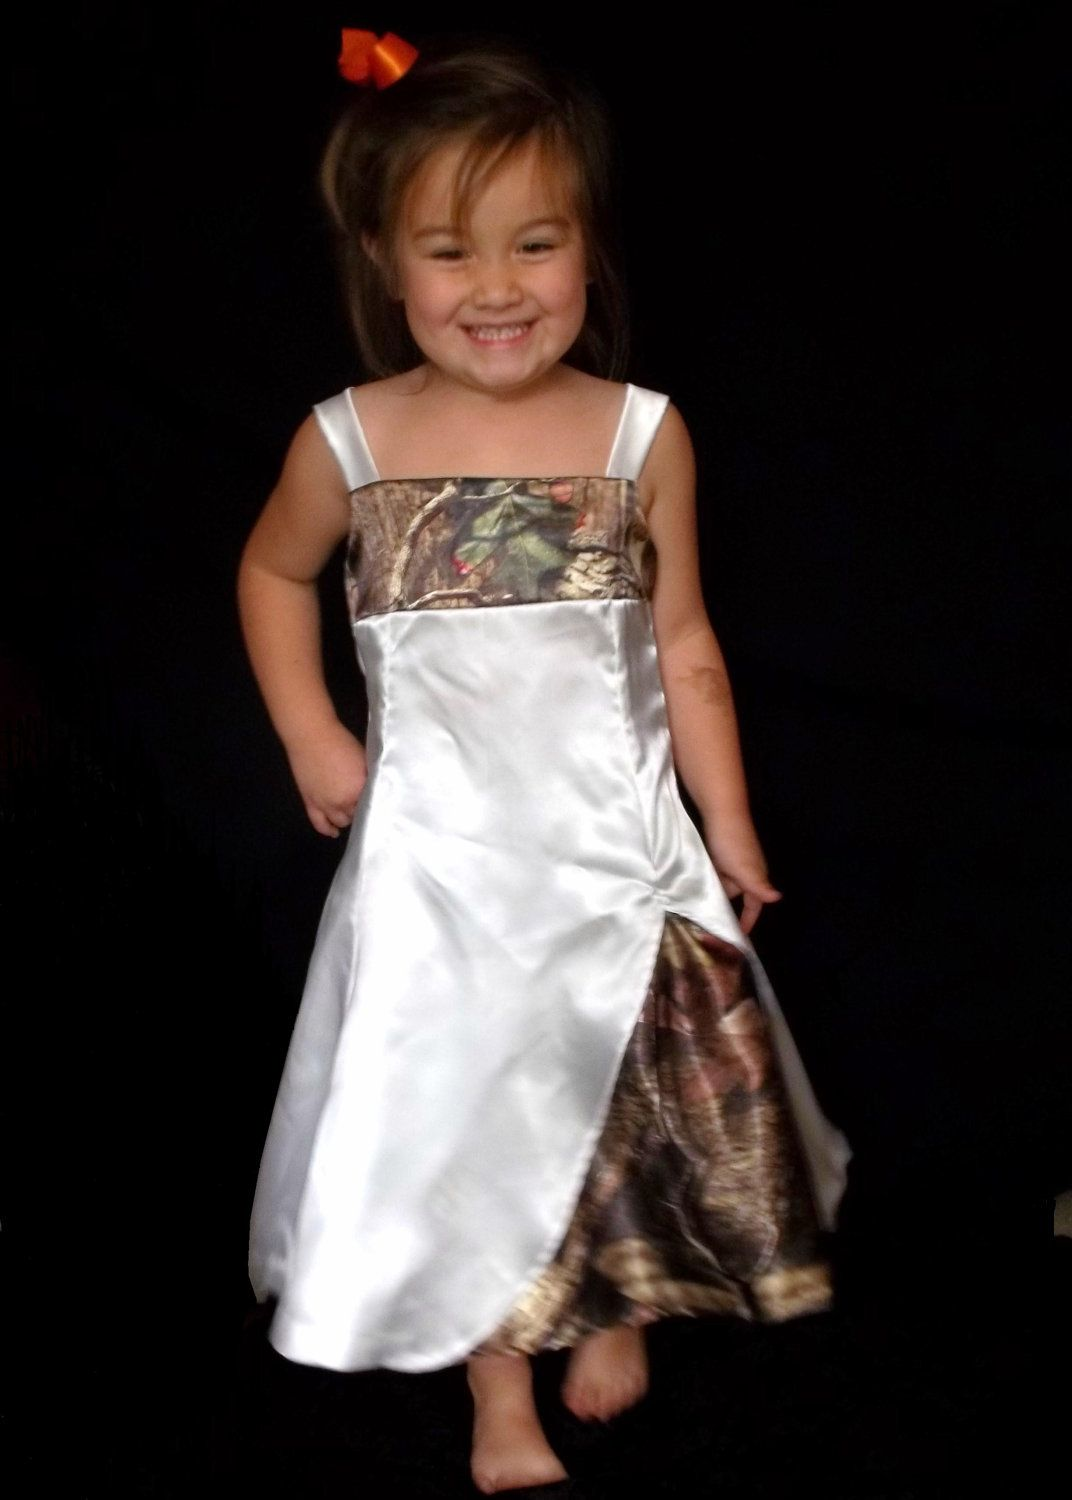 7875cf5c642 Can t believe how many camo flower girl dresses there are!